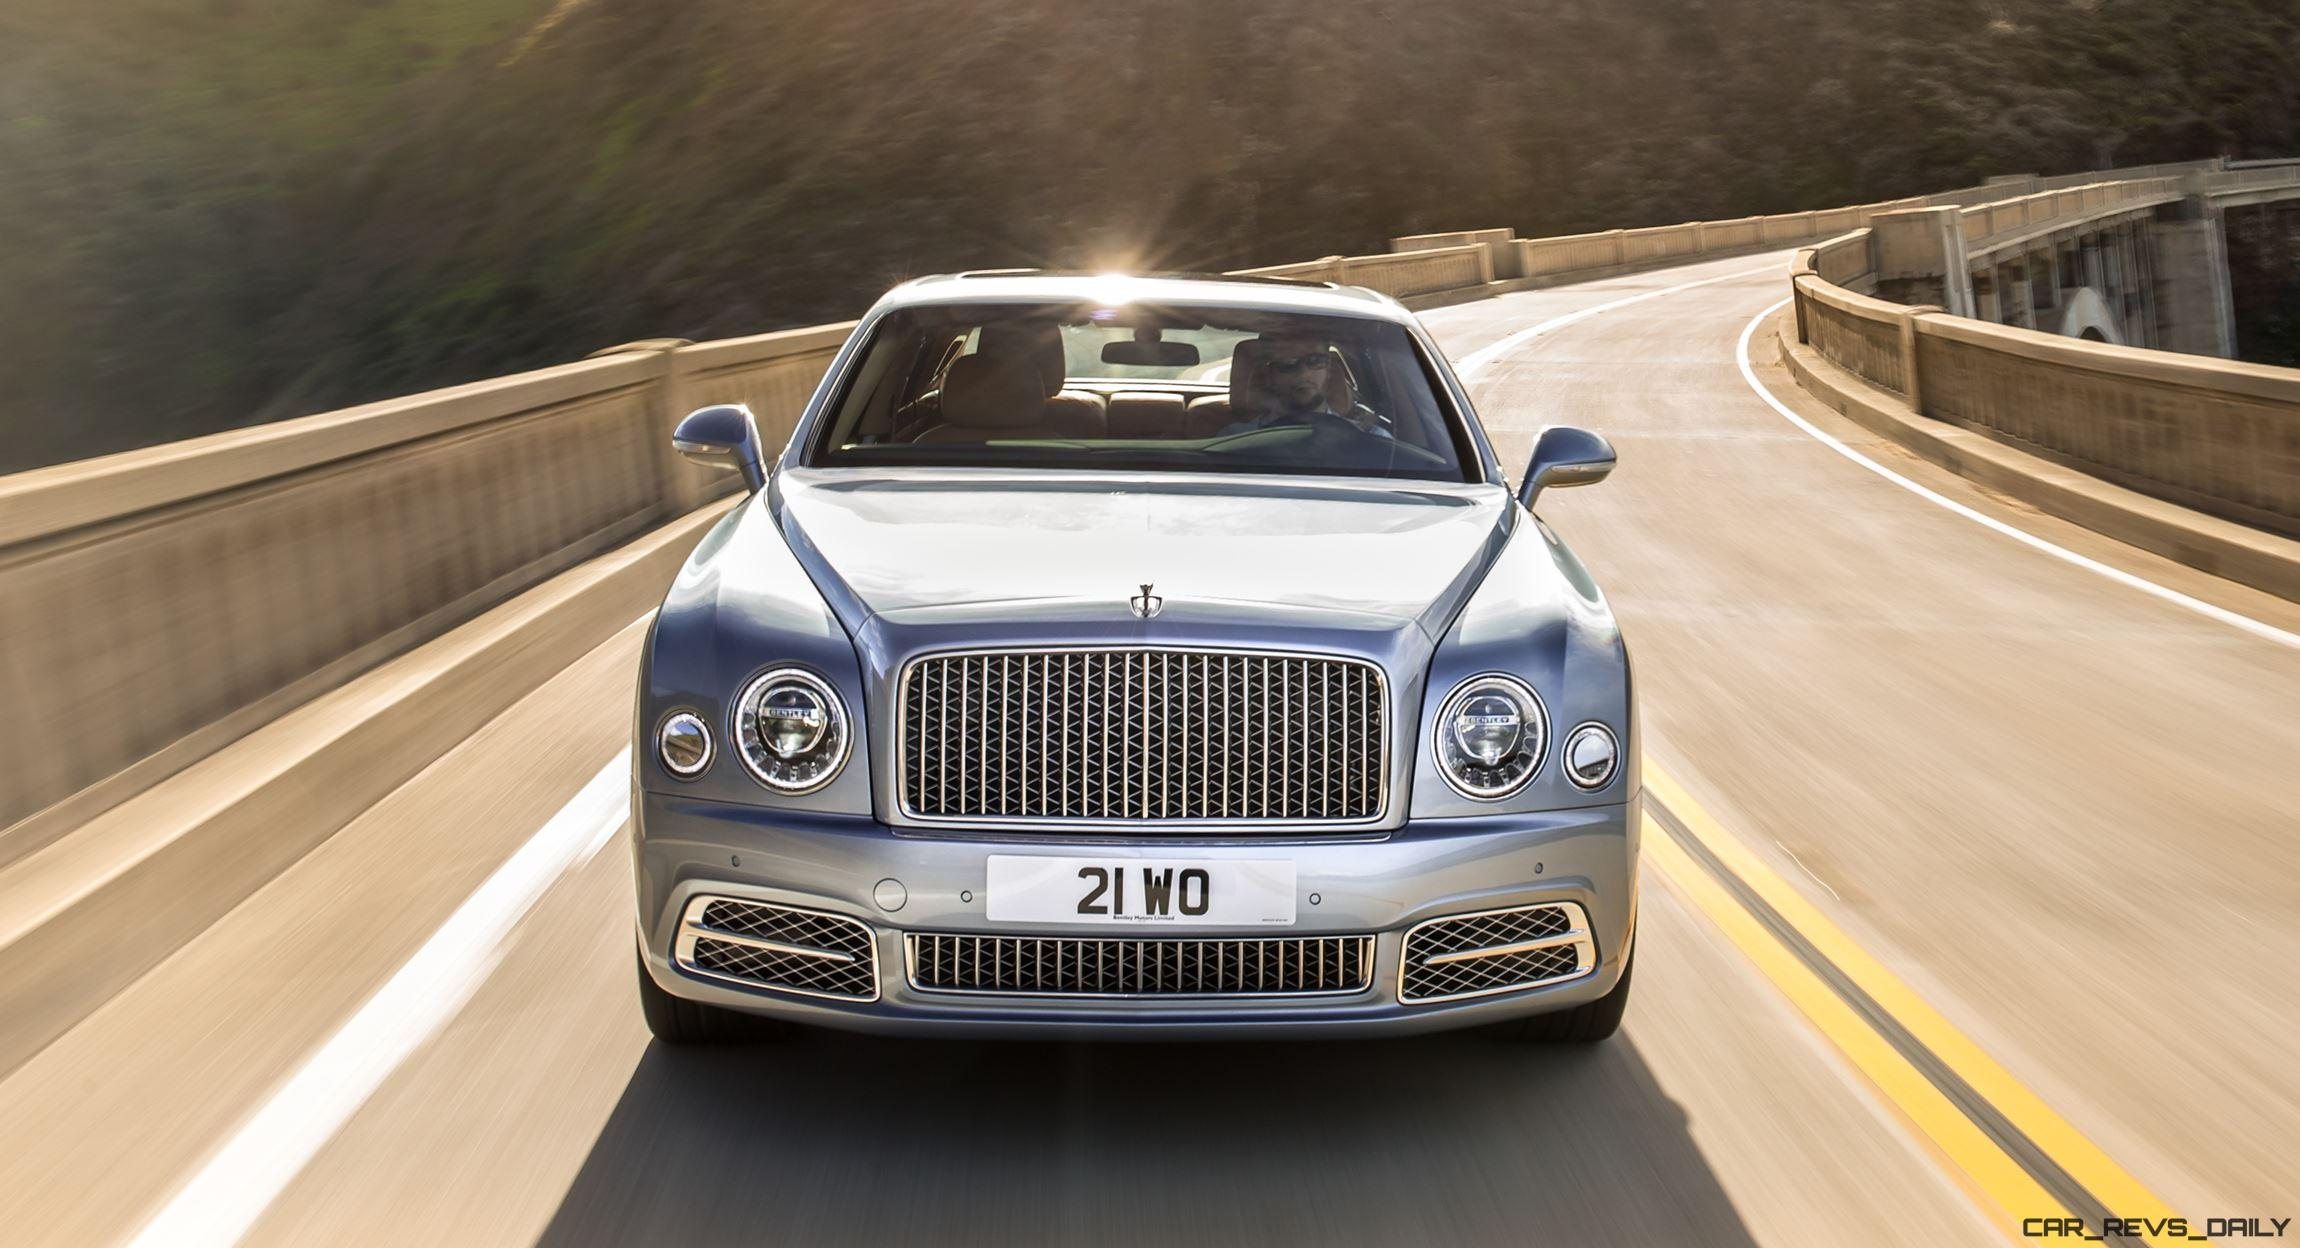 2017 Bentley MULSANNE Revealed - Refreshed Styling + Tech Leaves Bug